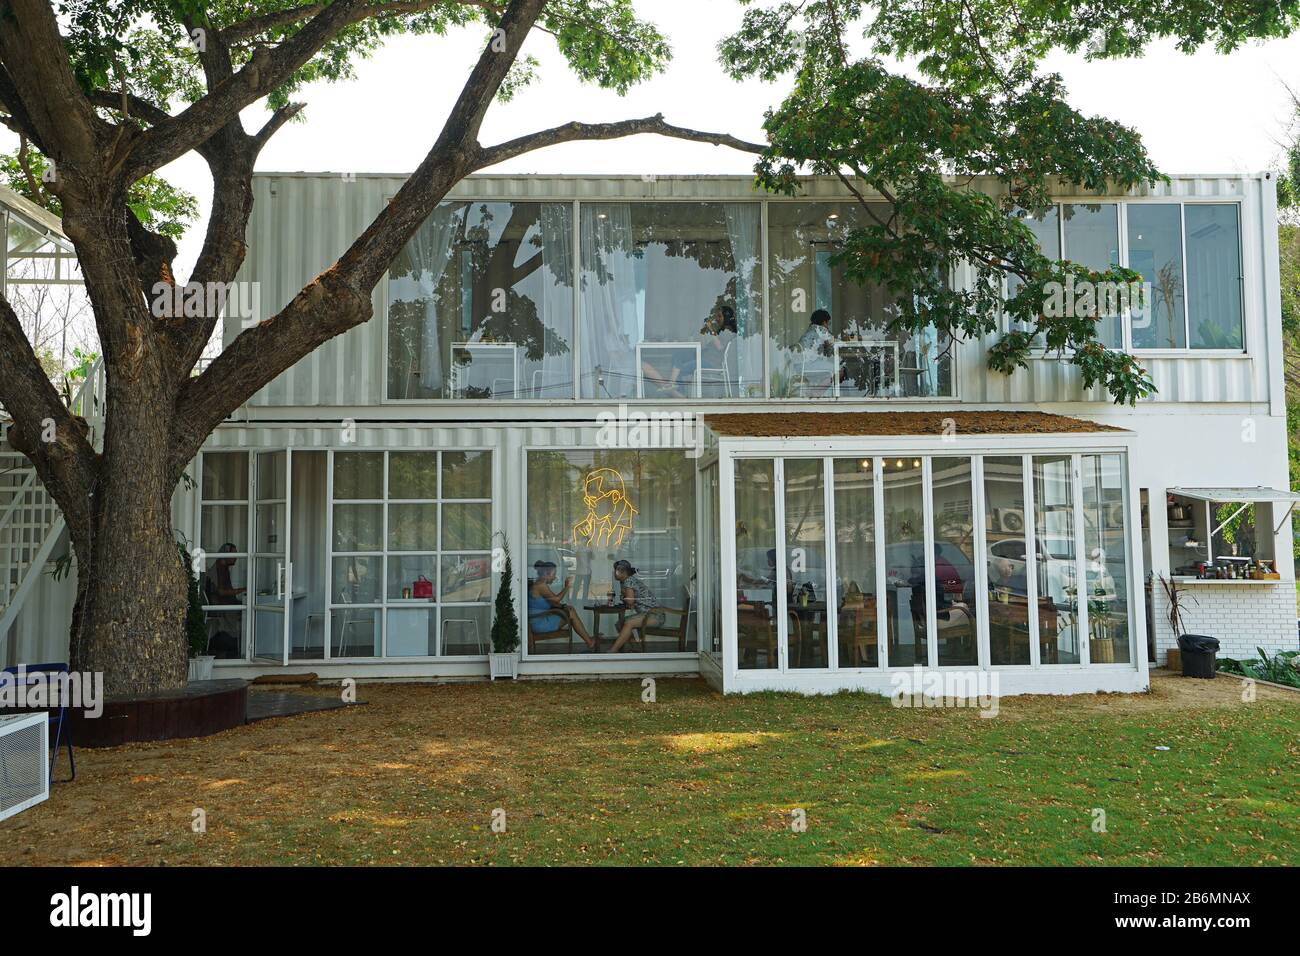 Exterior Architecture And Design Of Life Cafe Local Restaurant Coffee Shop And Beer Bar Among Green Garden Park Stock Photo Alamy